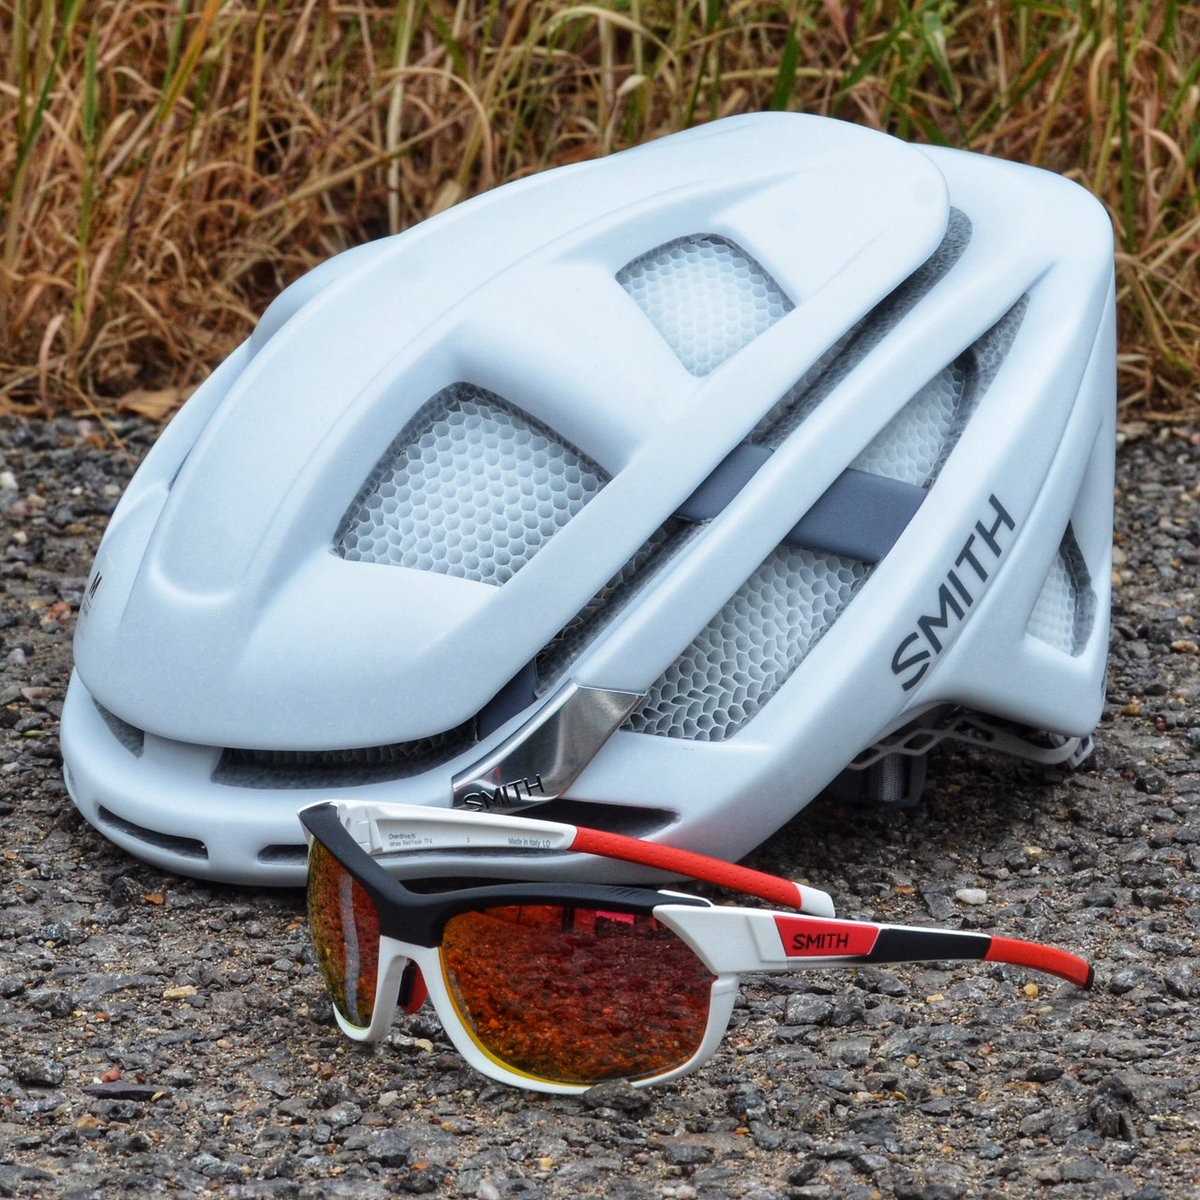 02ed403f1fde Whether you re looking for sunglasses or bike helmets we ve got you  covered. Few sites stock a wider range than us.